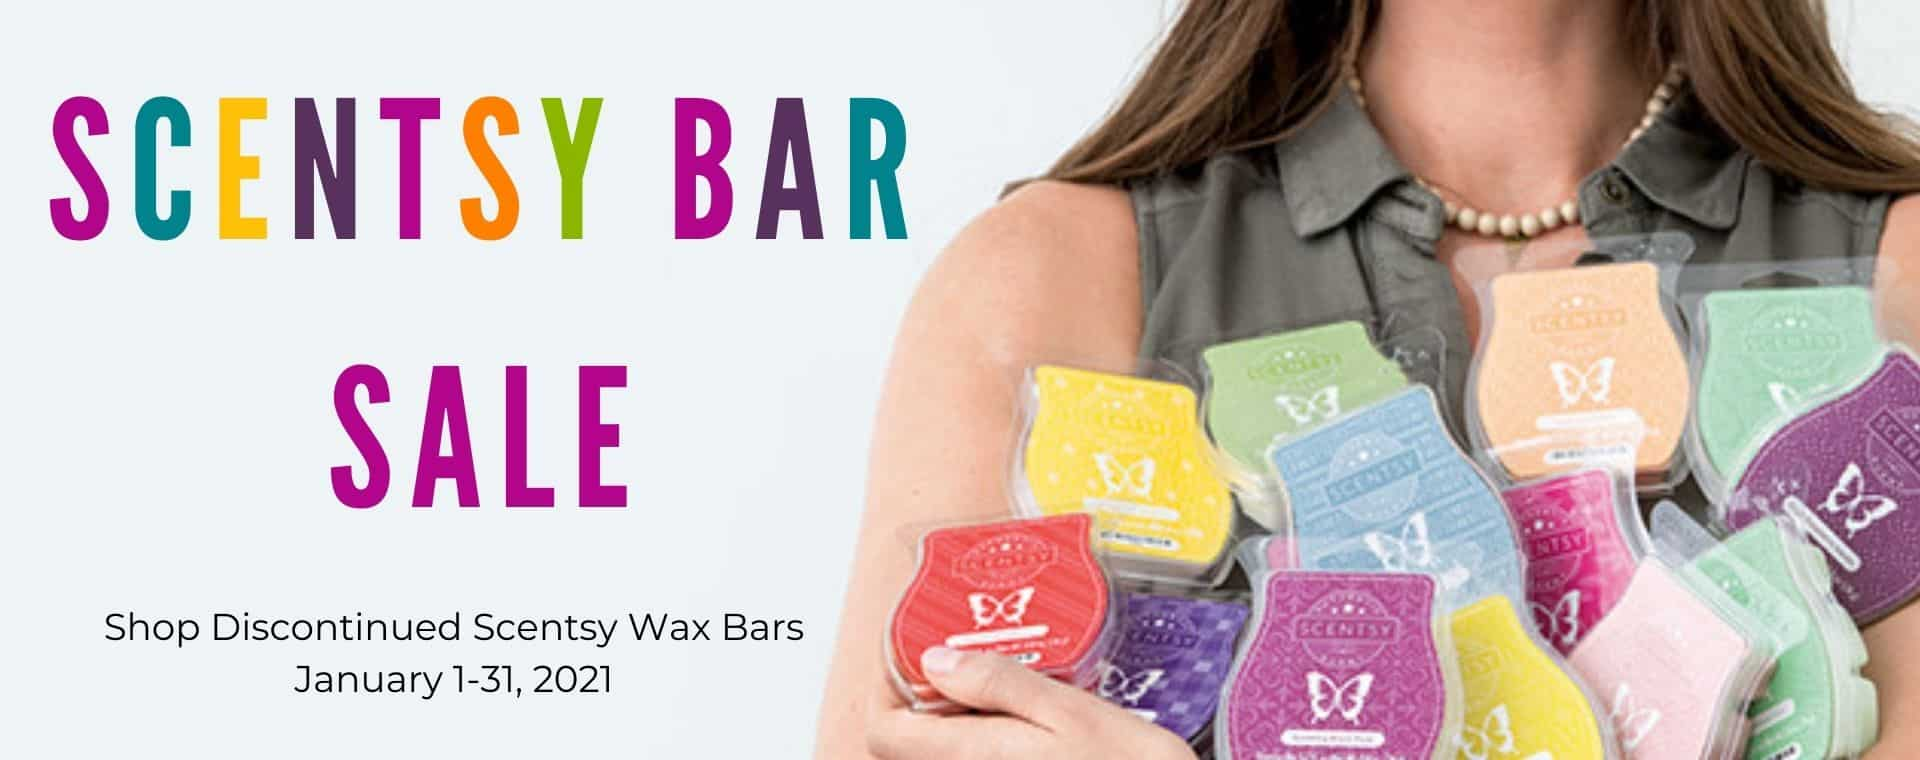 SCENTSY BAR SALE 2021 2